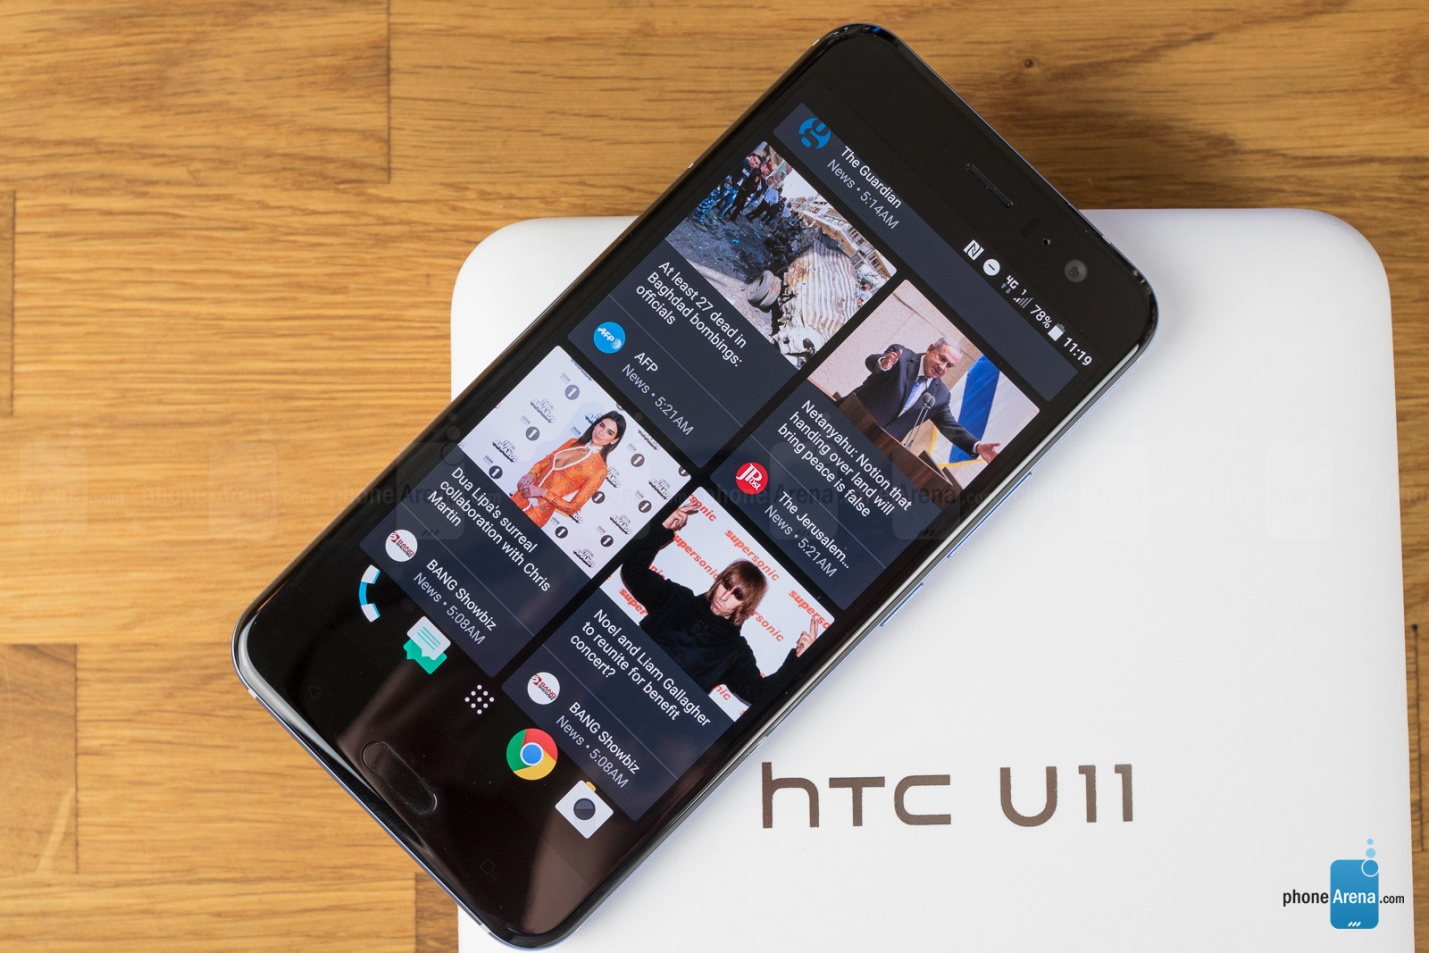 C:UsersAlexeyPicturesHTC U11HTC-U11-Review-001.jpg